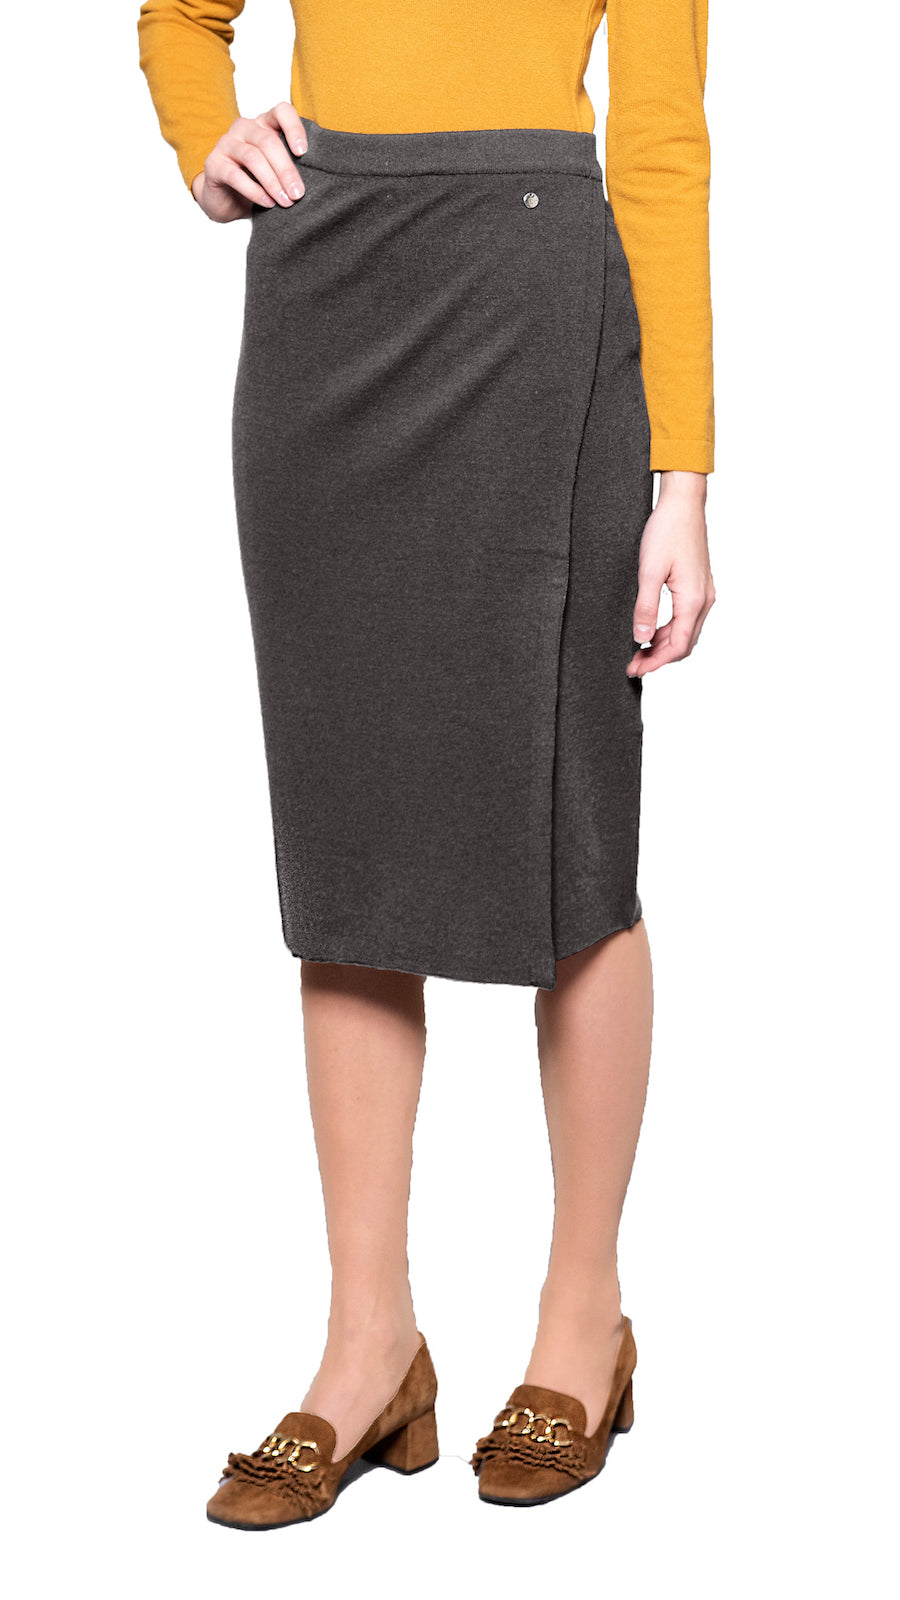 CONTEMPO Sylvie Mock-Wrap Knitted Skirt, Taupe